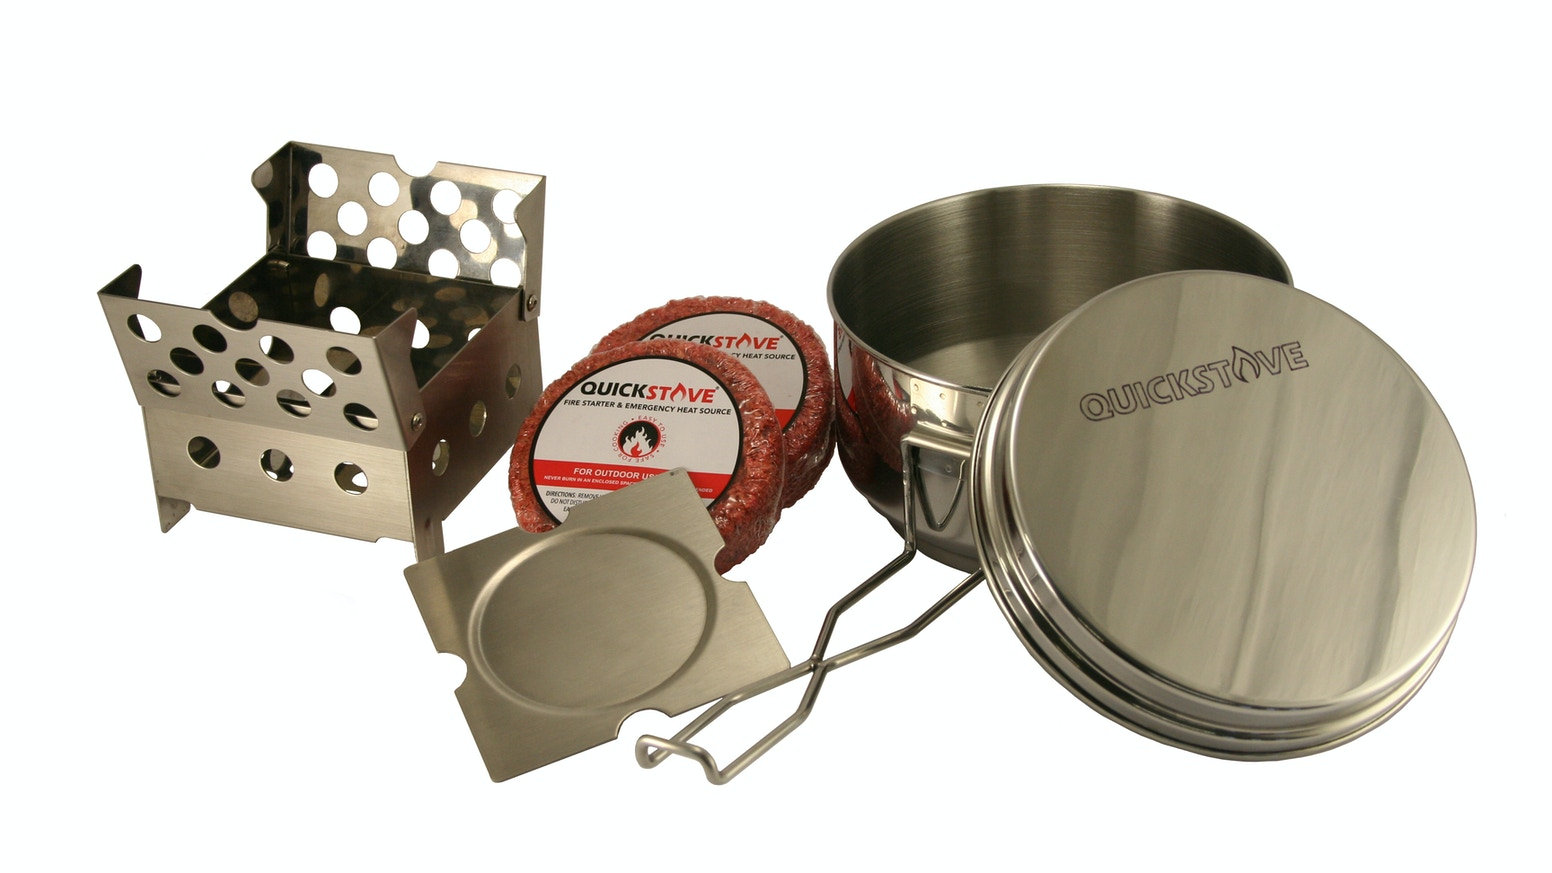 A Survival Cook Kit with Stove, Pot and Fire Starters. Ideal for camping, outdoors and emergency prep.